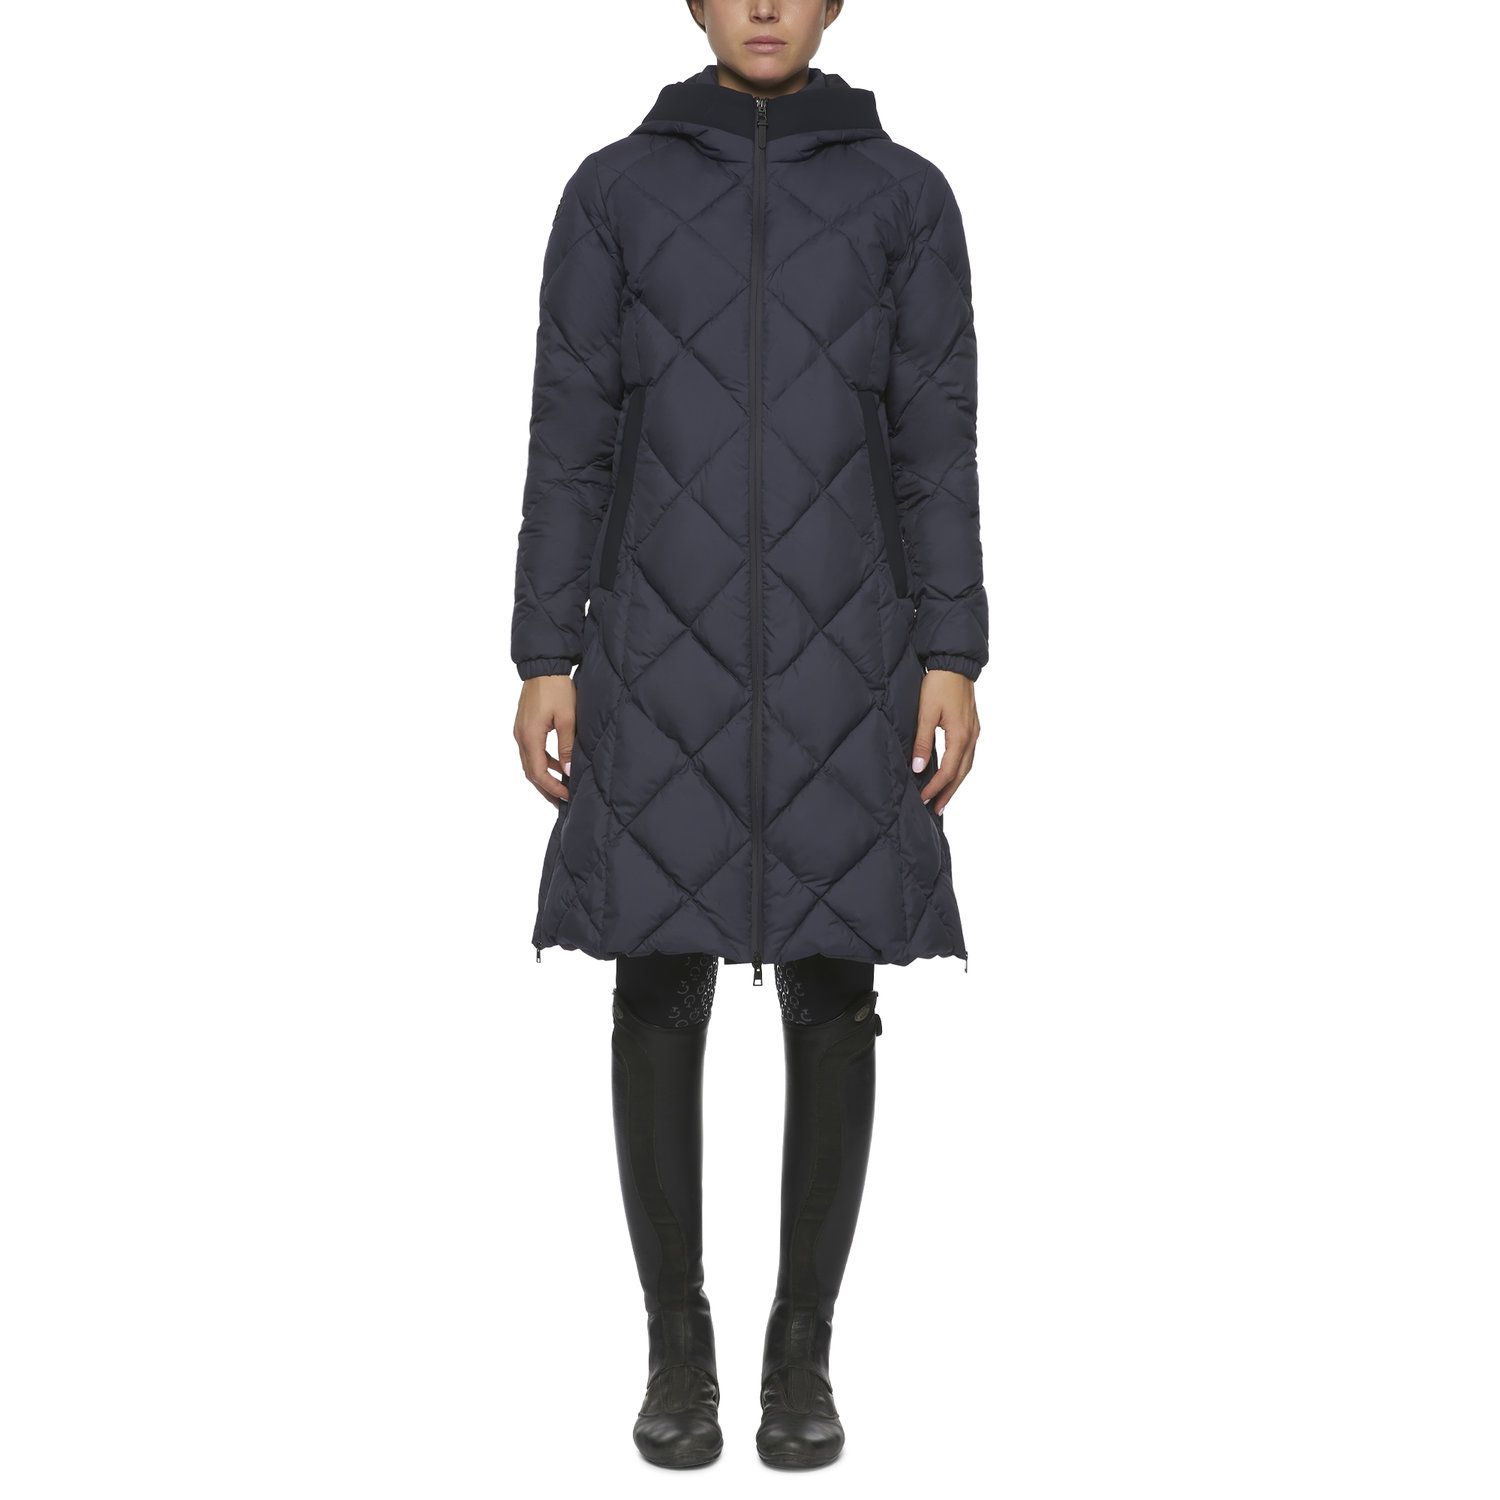 Women's quilted parka jacket